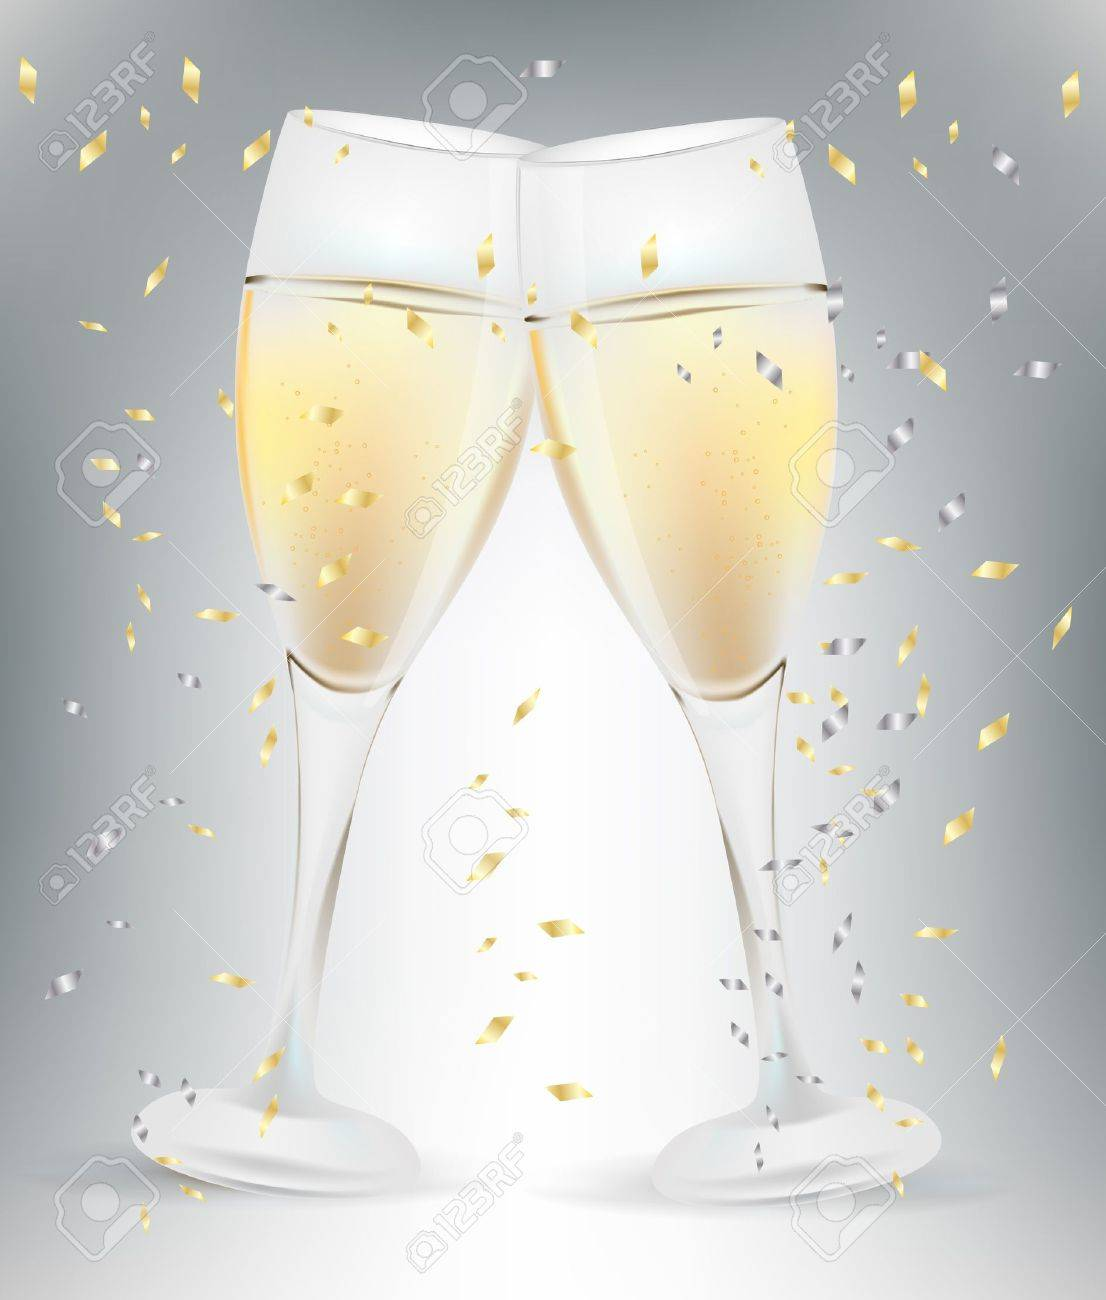 Two Celebration Champagne Glasses And Confetti Royalty Free